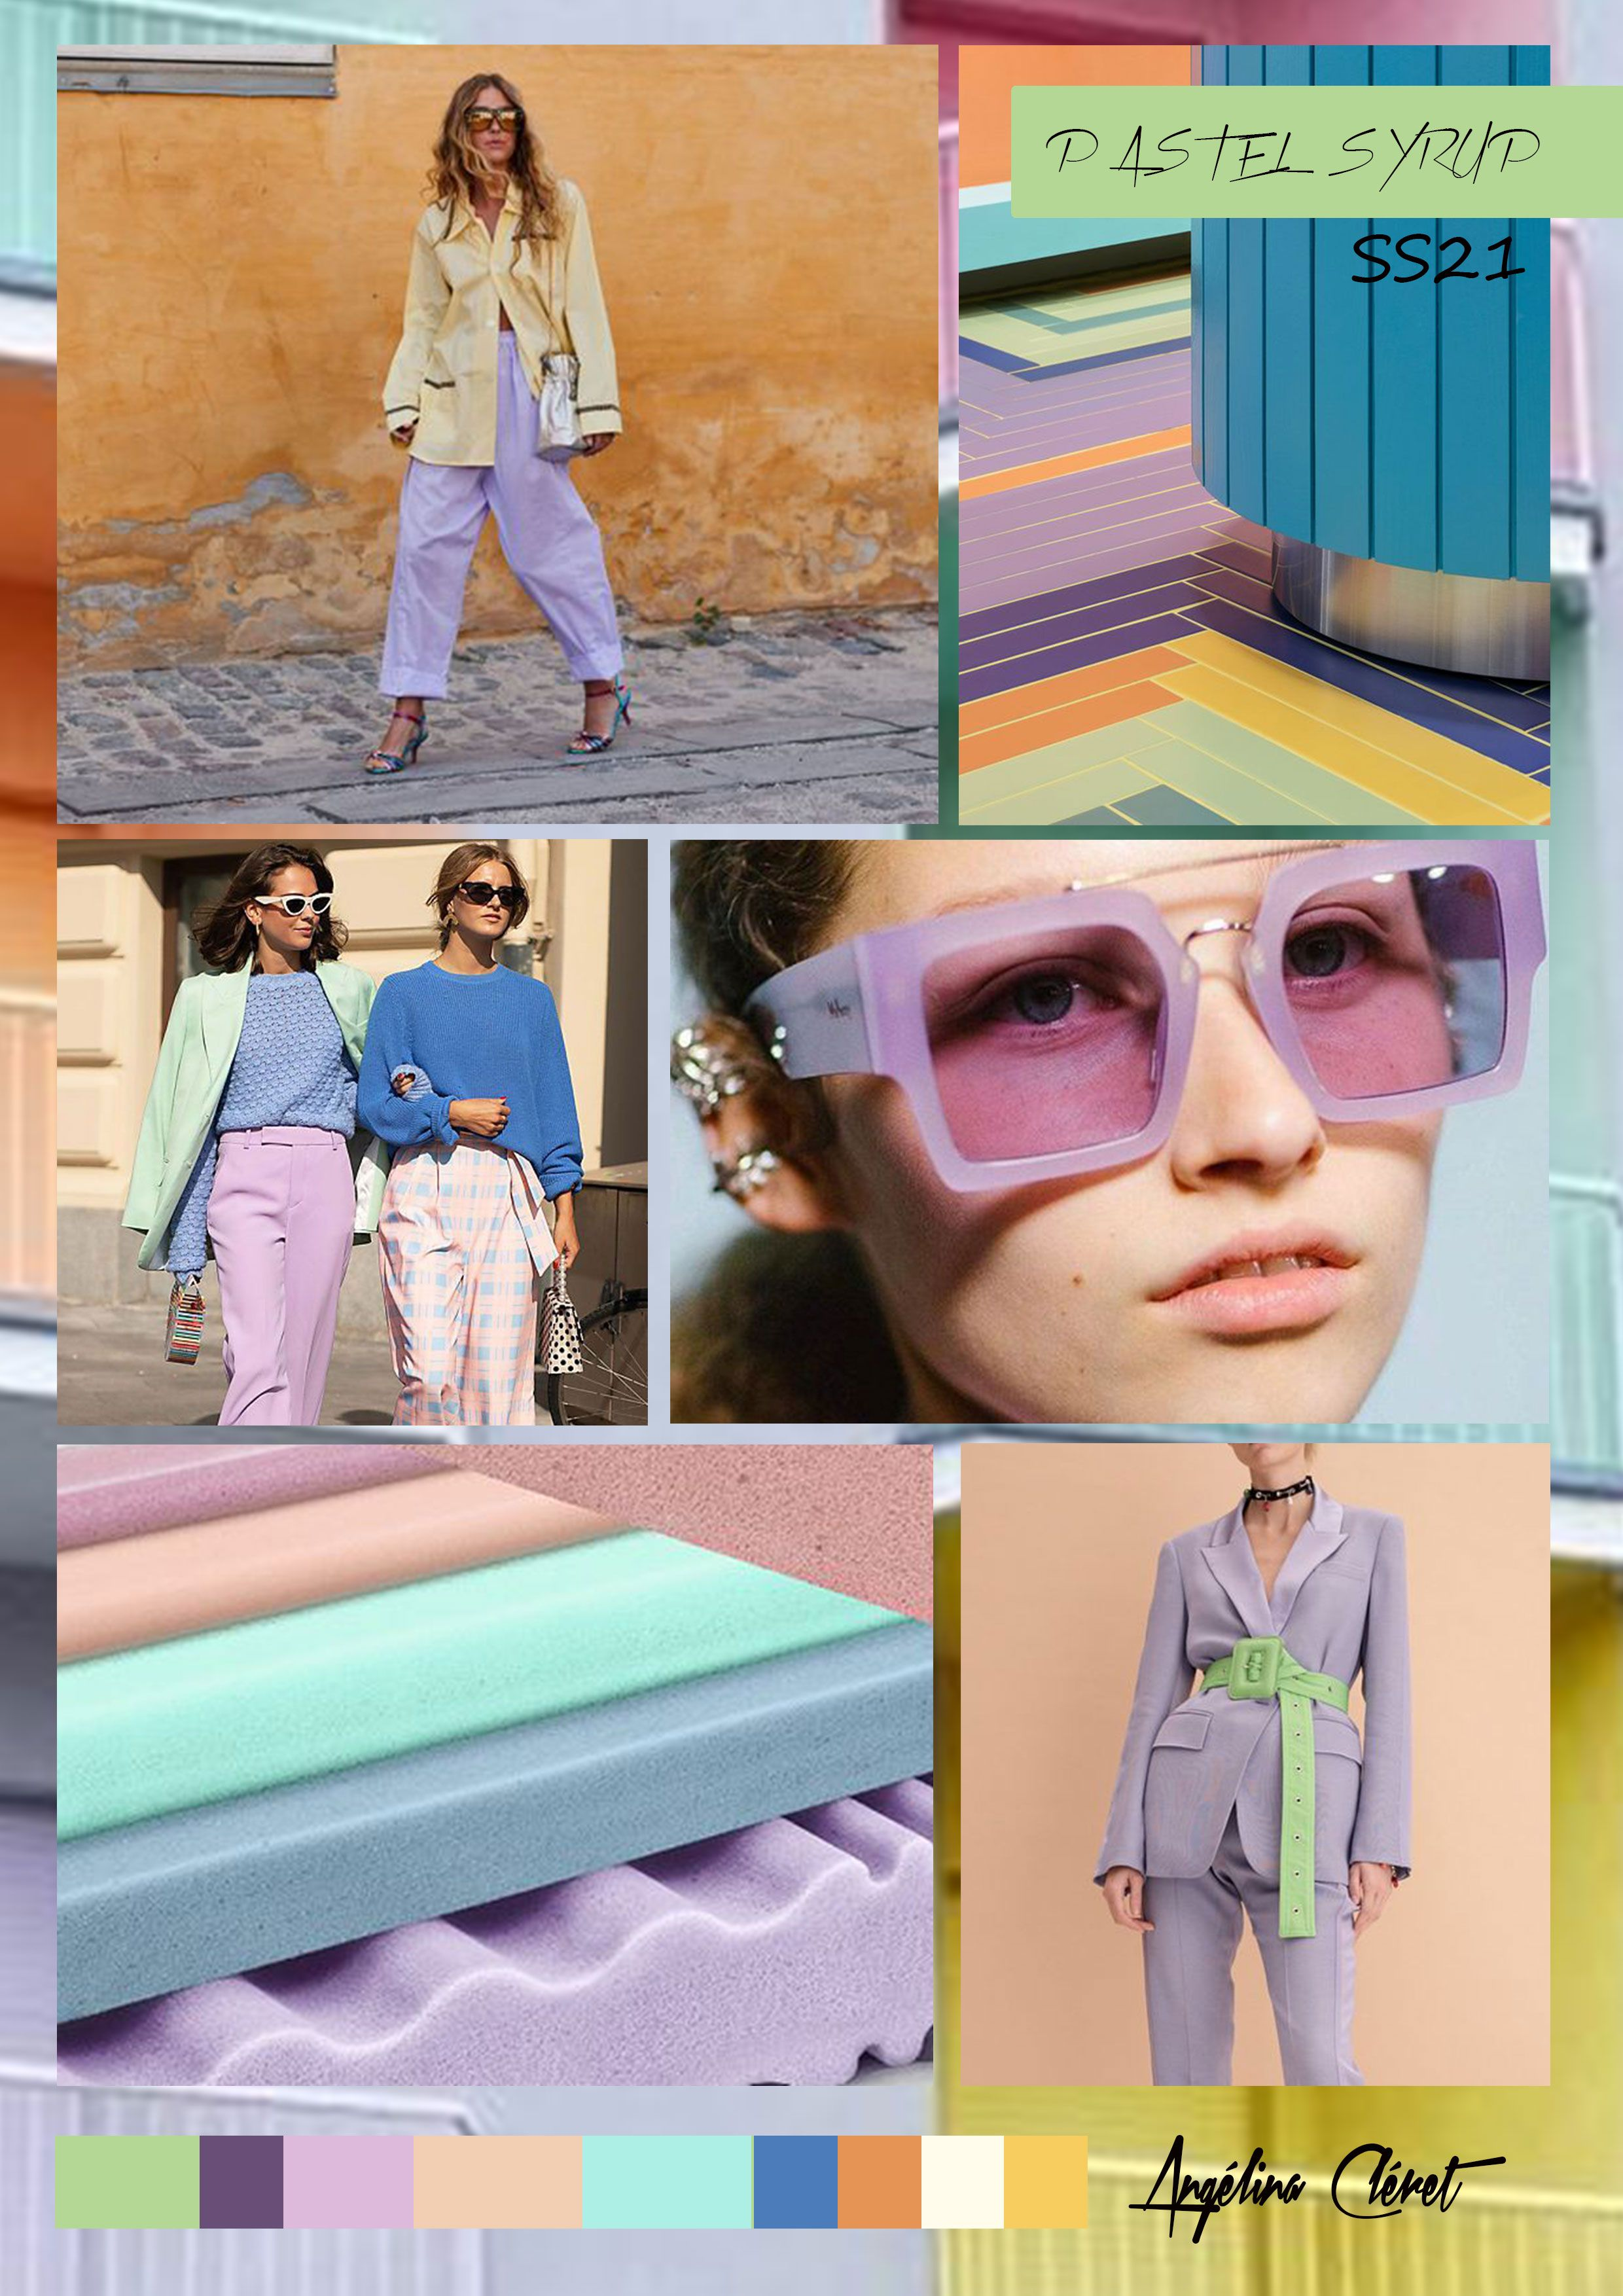 PASTEL SYRUP SS8 - Fashion & Trend Colors by Angélina Cléret